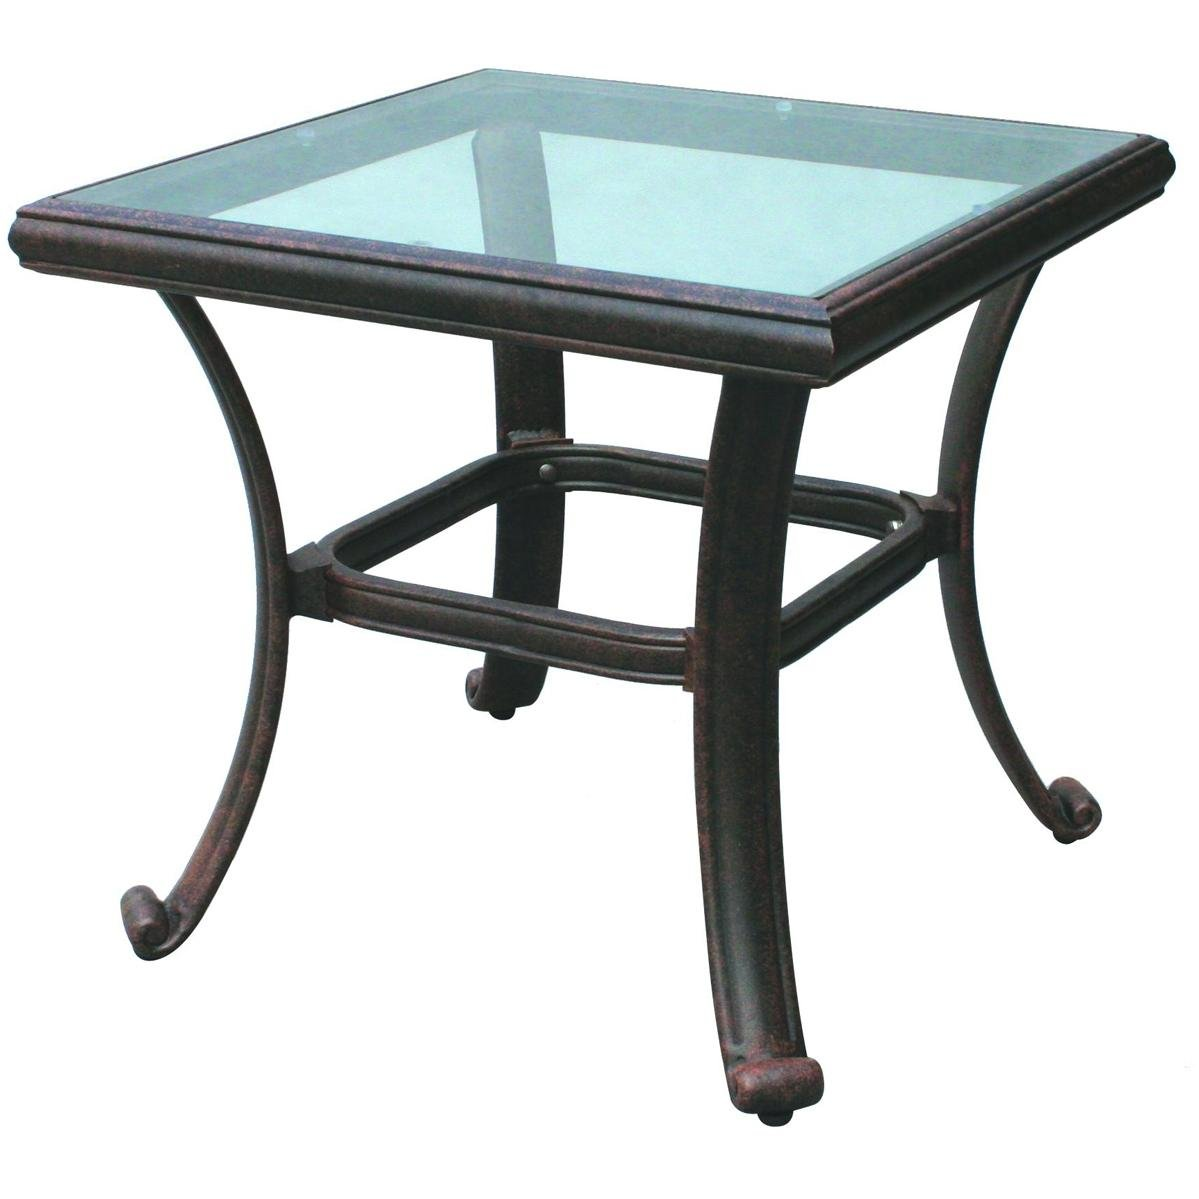 darlee patio square end table with glass top antique outdoor bronze side tables garden chip and joanna living rooms broyhill clearance revelation cocktail diy crate nightstand